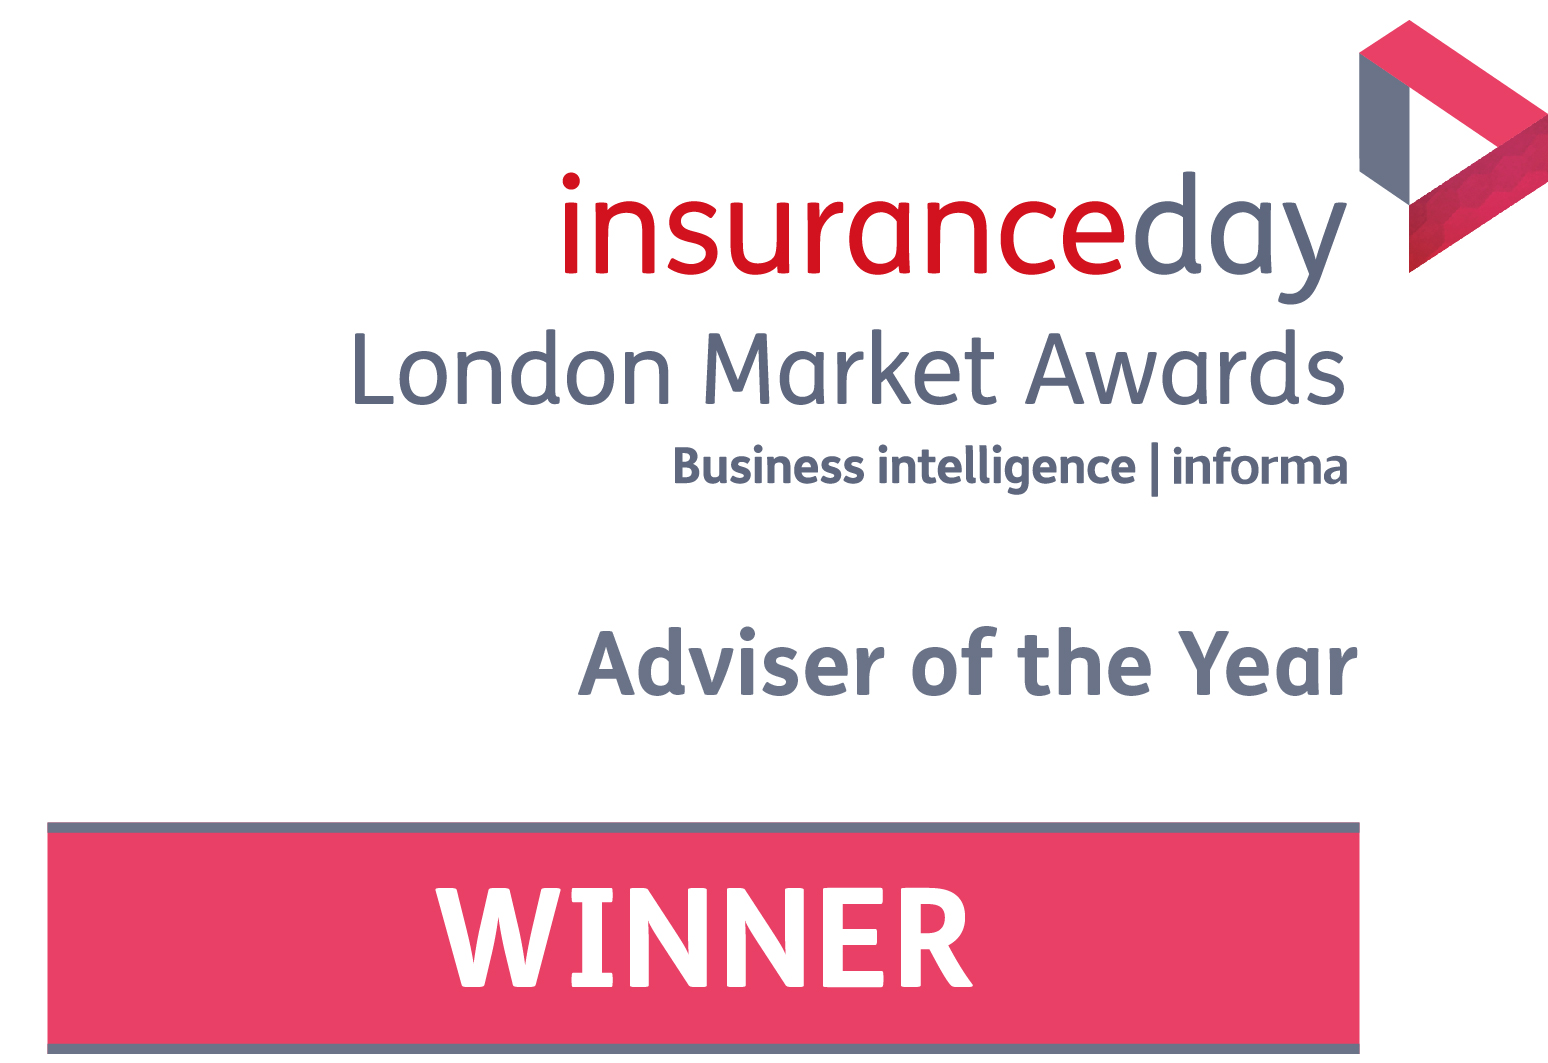 Insurance Day Awards – Adviser of the Year